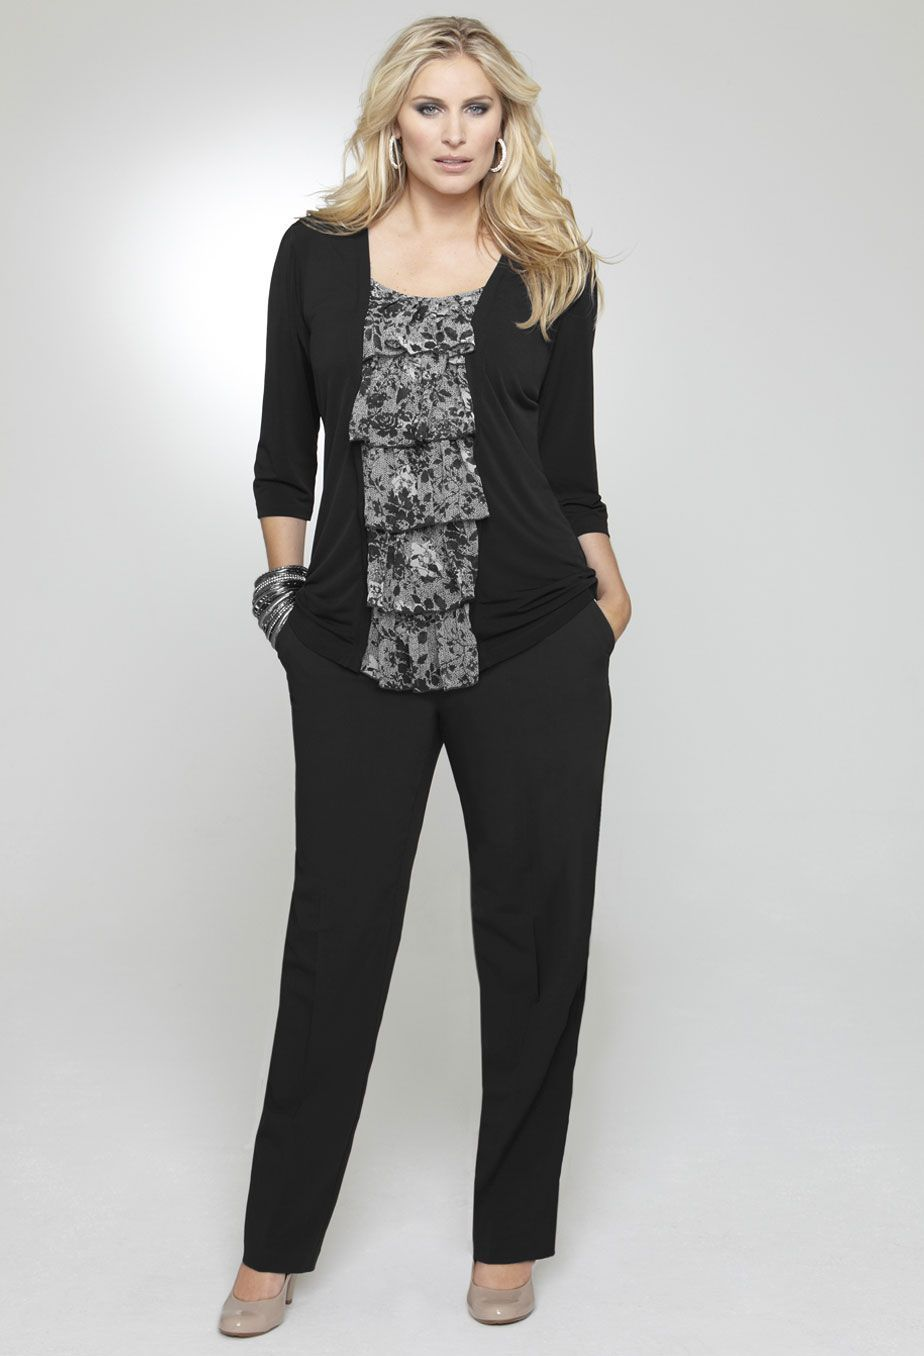 Plus Size Interview Outfits, Business Casual